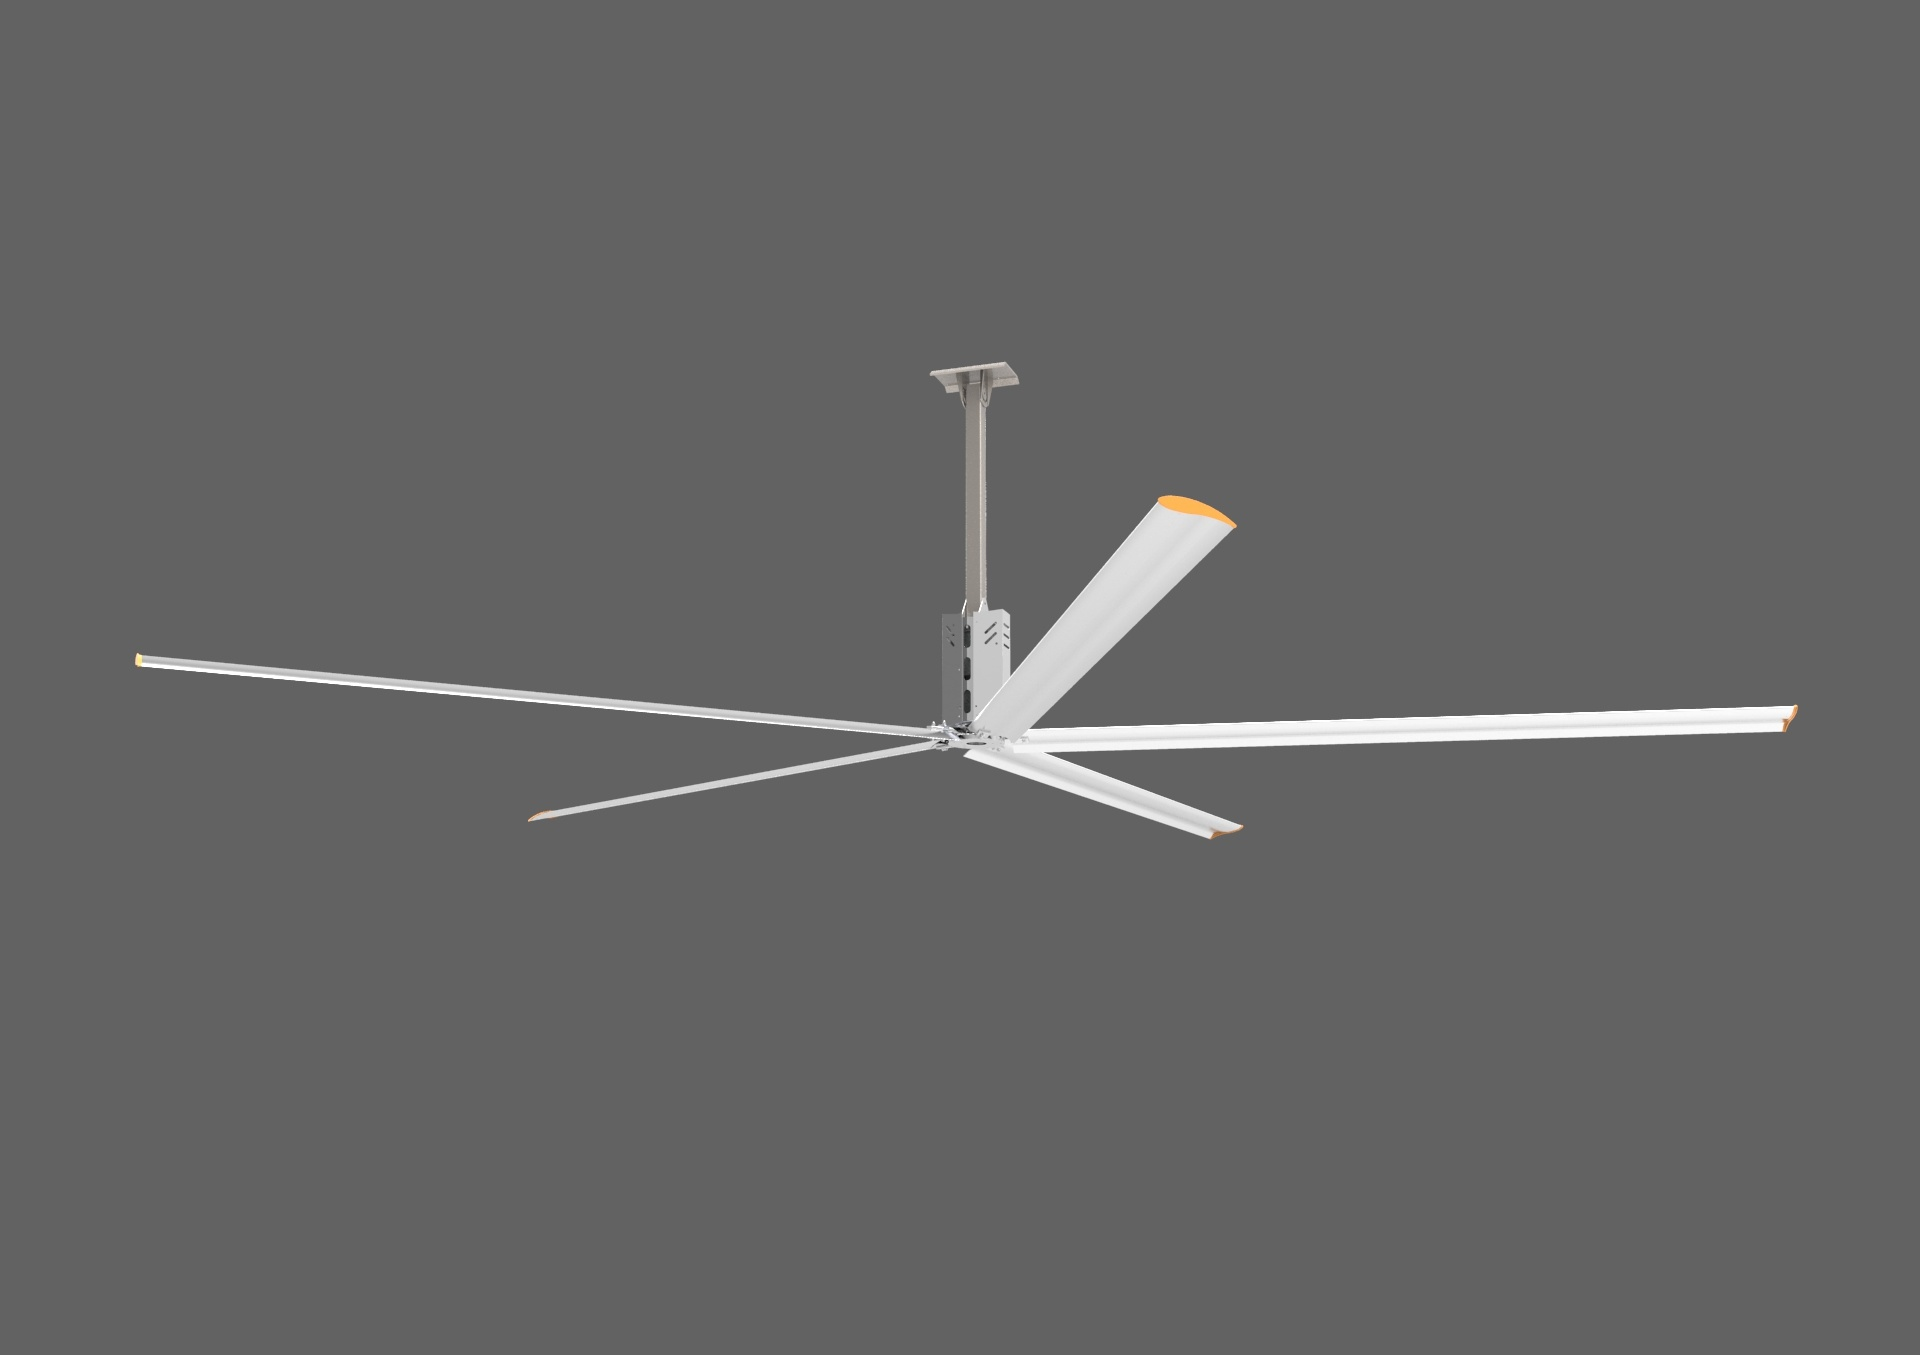 6.2m (20.4FT) Customized Maintenance Industrial Free Hvls Big Ceiling Fan